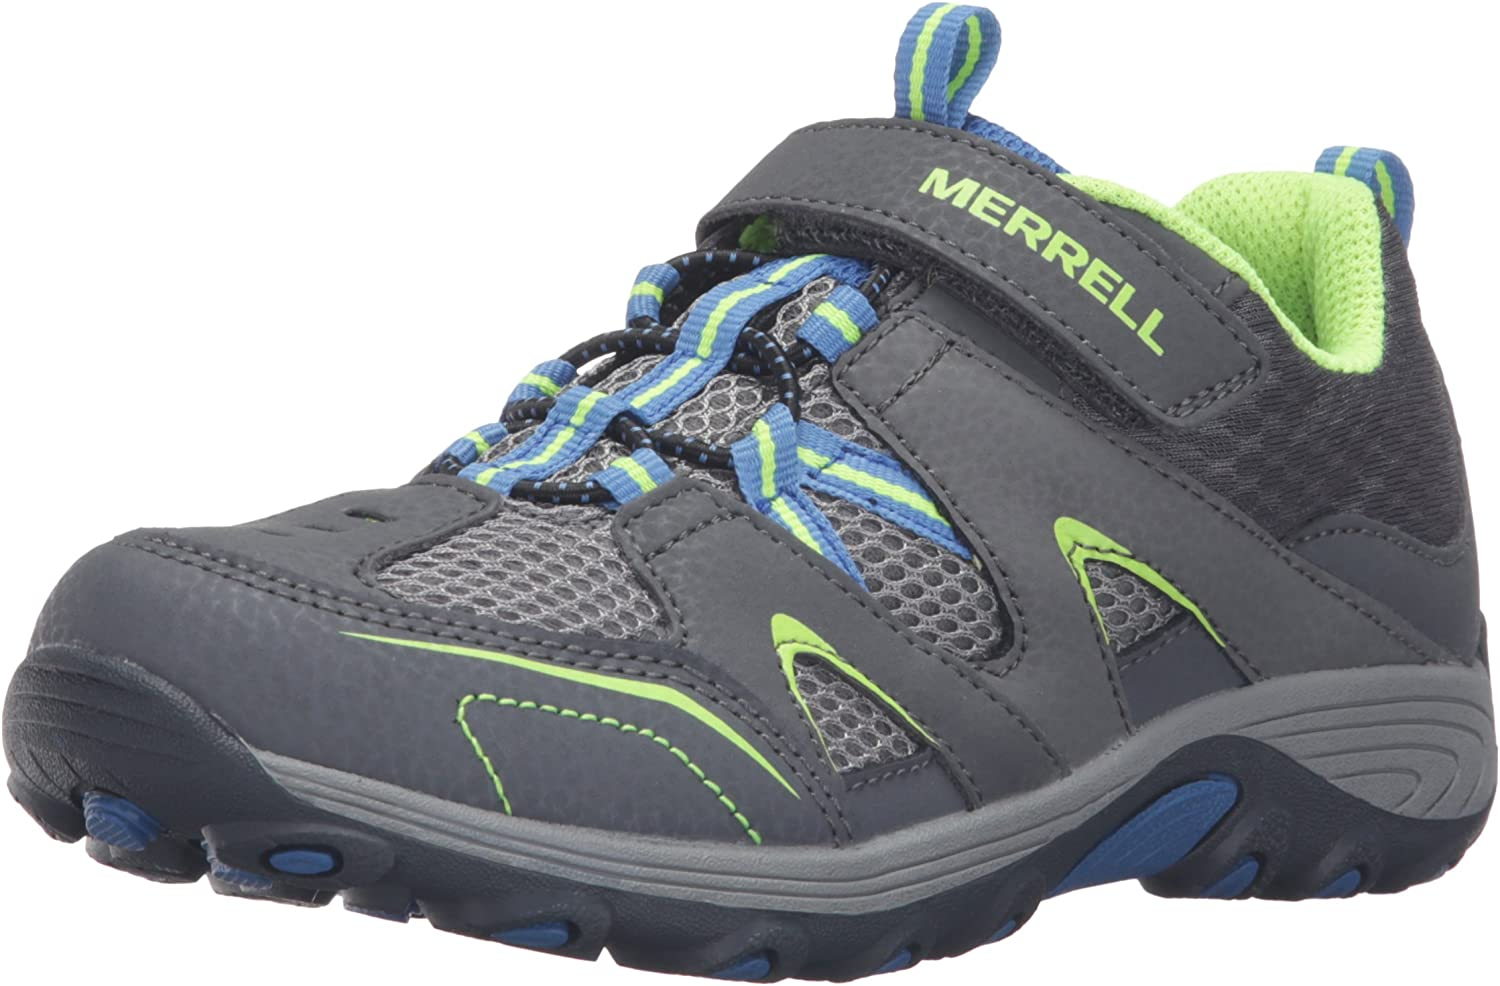 Merrell Trail Chaser Hiking shoes